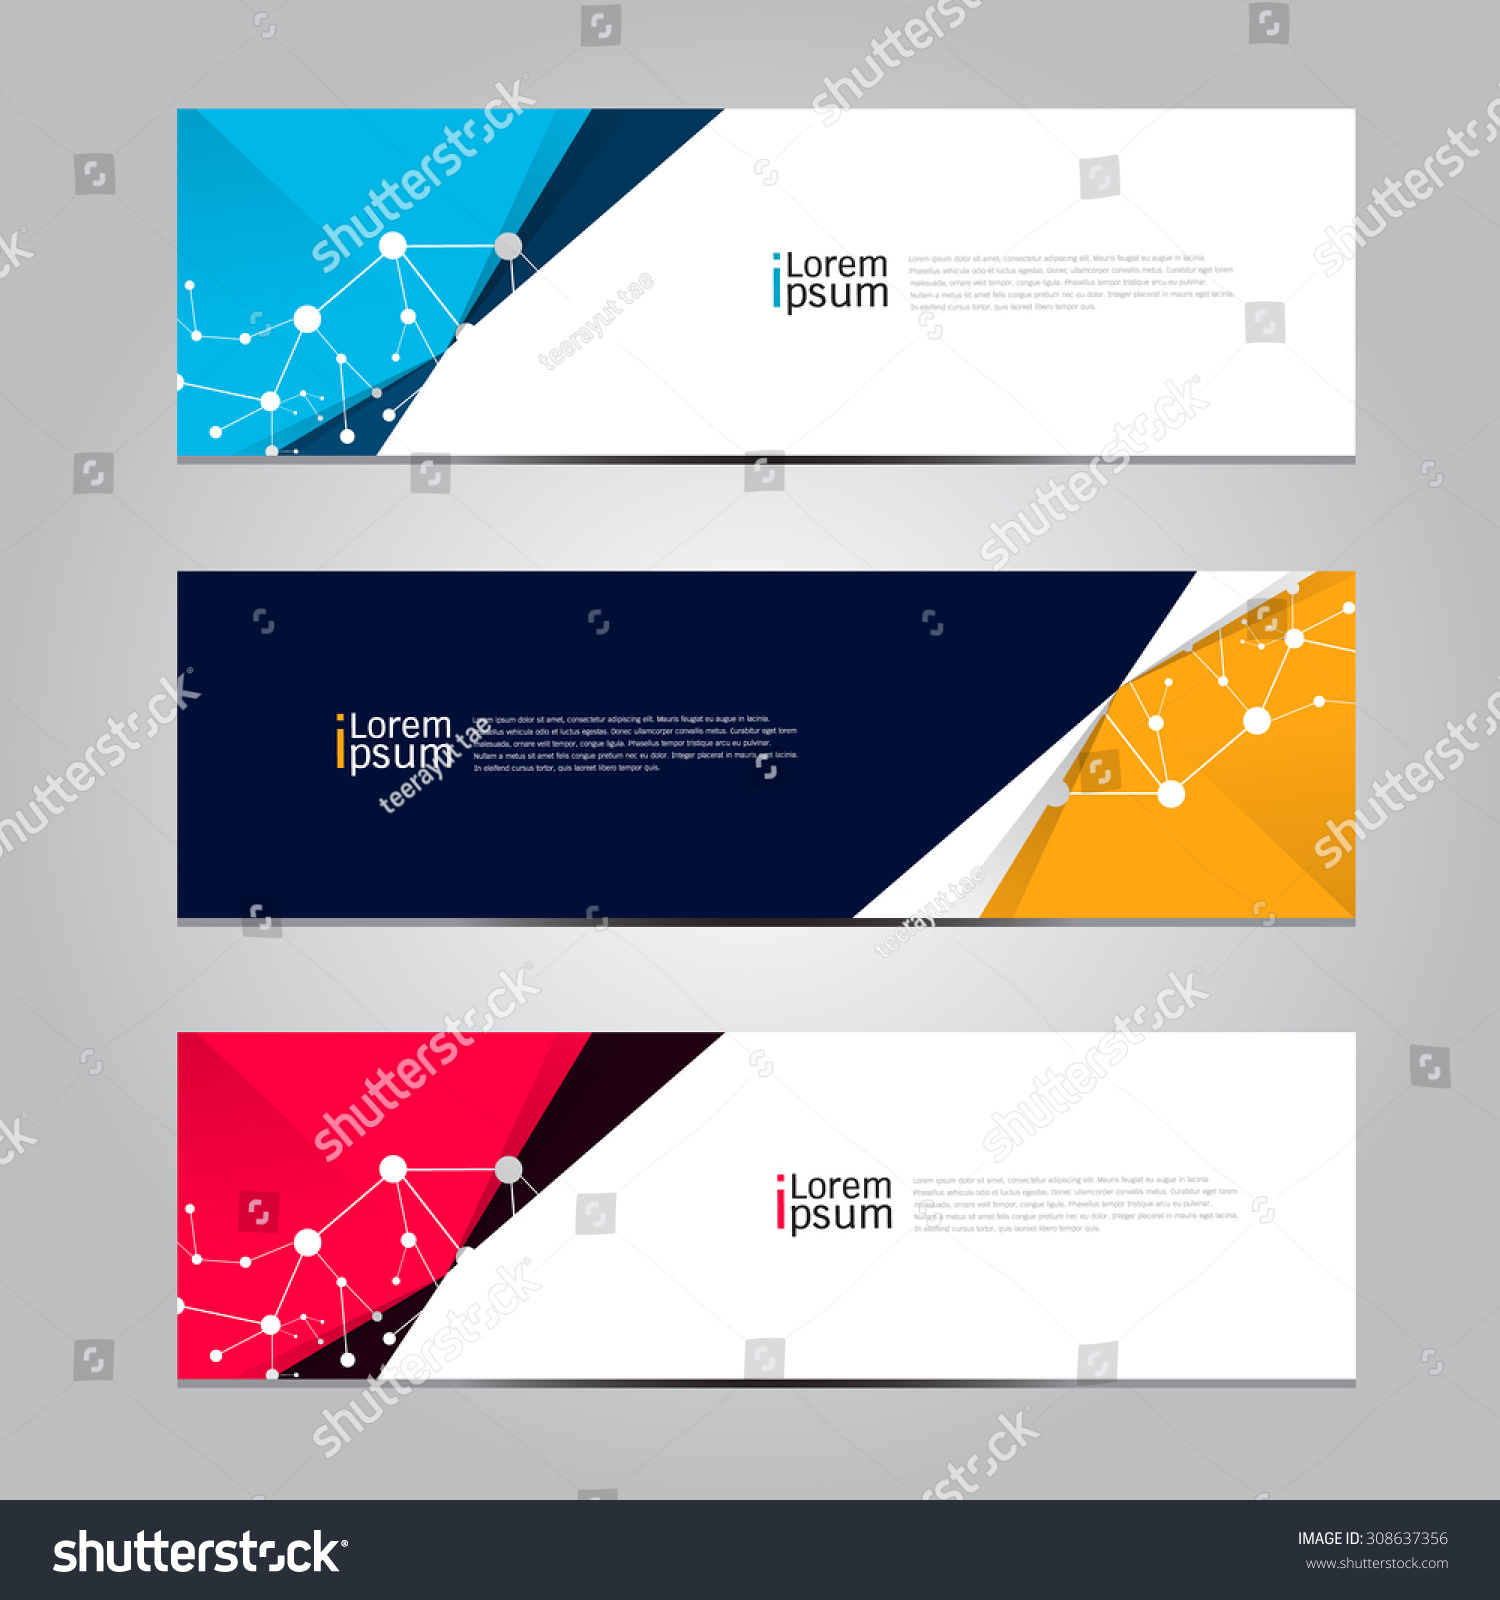 Vector design Banner background. illustration EPS10 #308637356